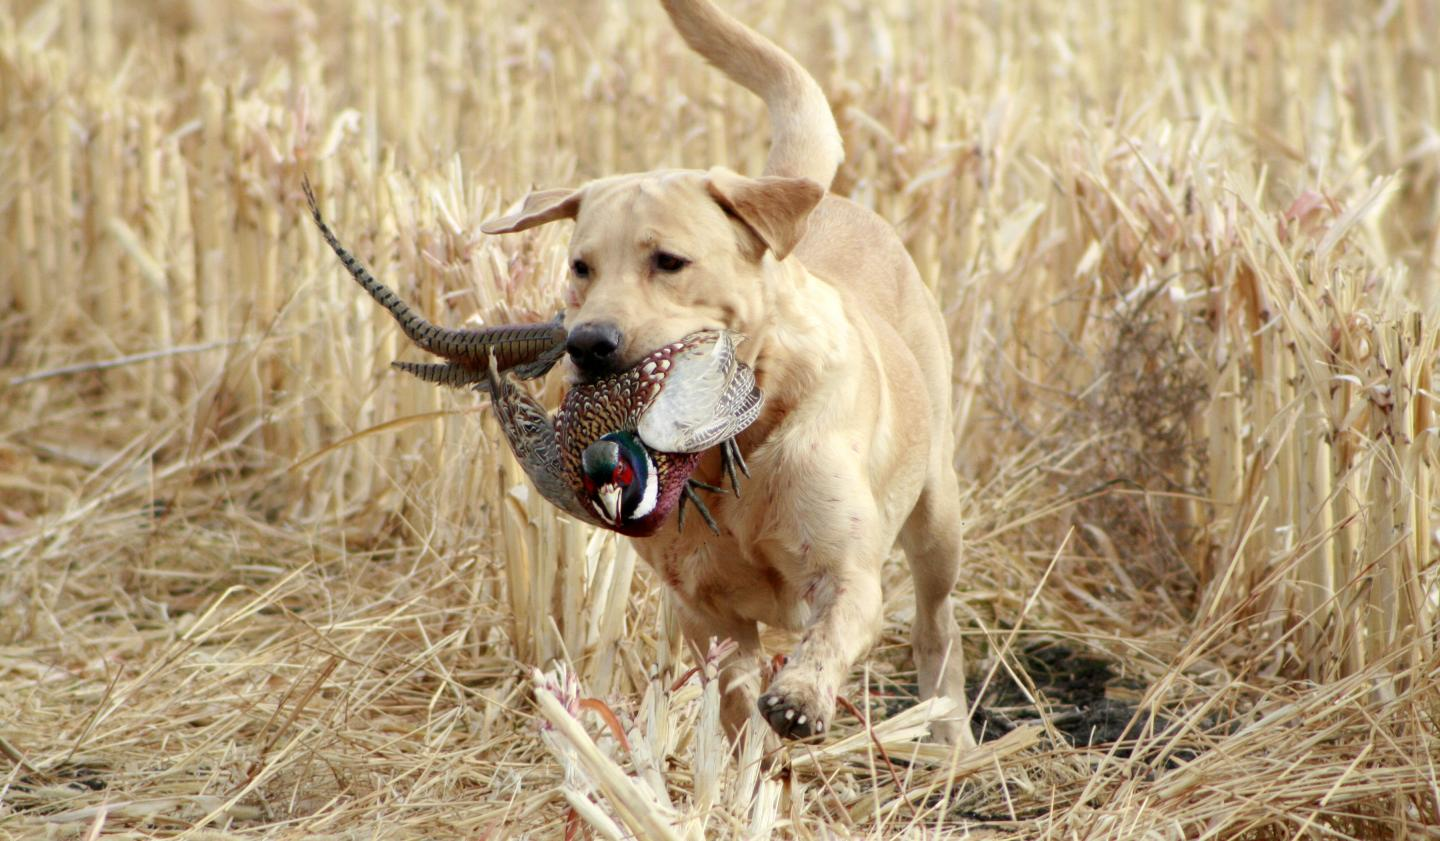 Yellow Labrador Retriever, Lilly, in mid-run through a corn field with pheasant in her mouth